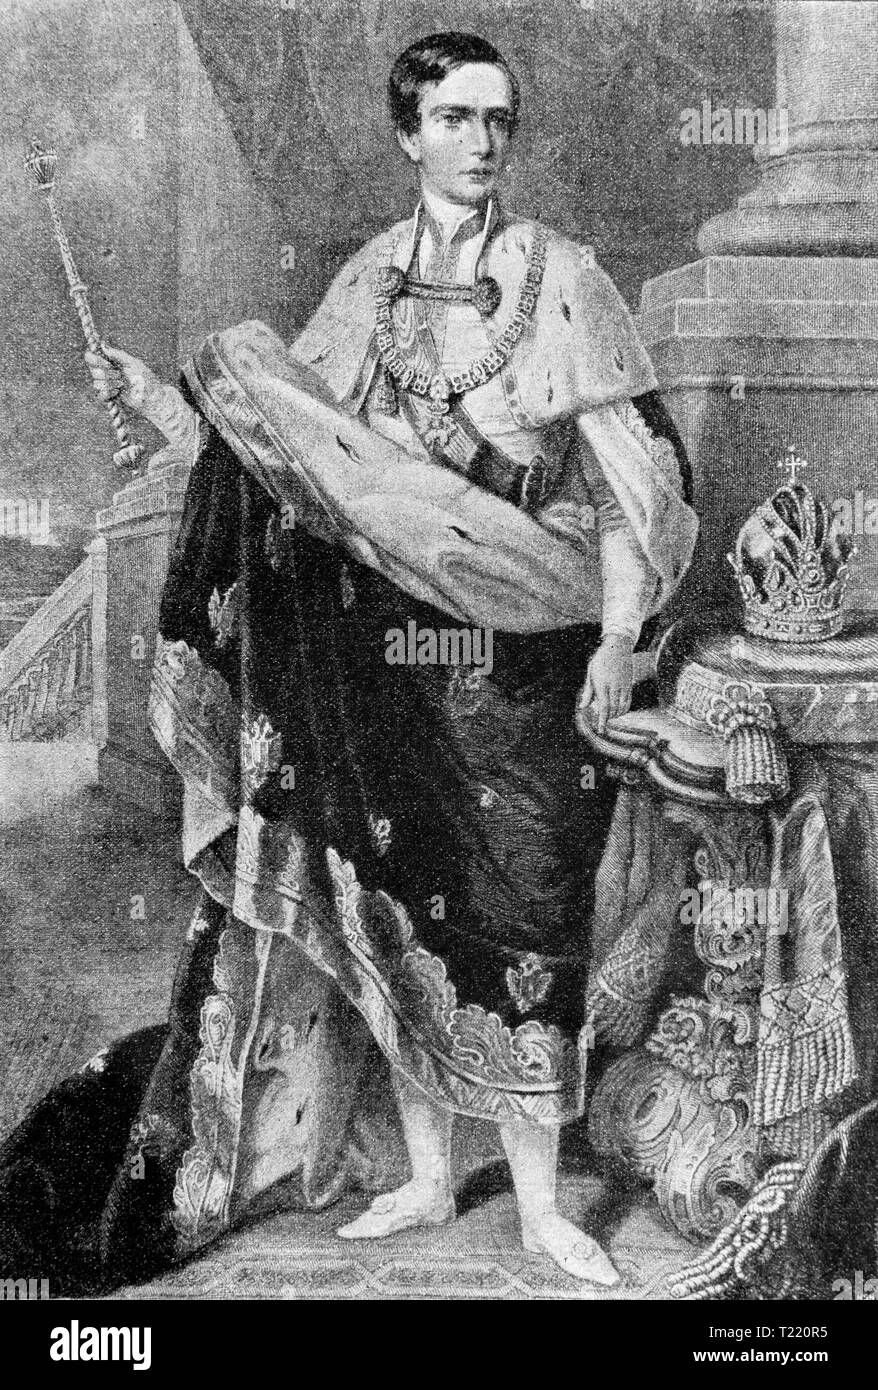 Franz Joseph I, Emperor of Austria. In 1849 engraving. Digital improved reproduction from Illustrated overview of the life of mankind in the 19th century, 1901 edition, Marx publishing house, St. Petersburg. - Stock Image